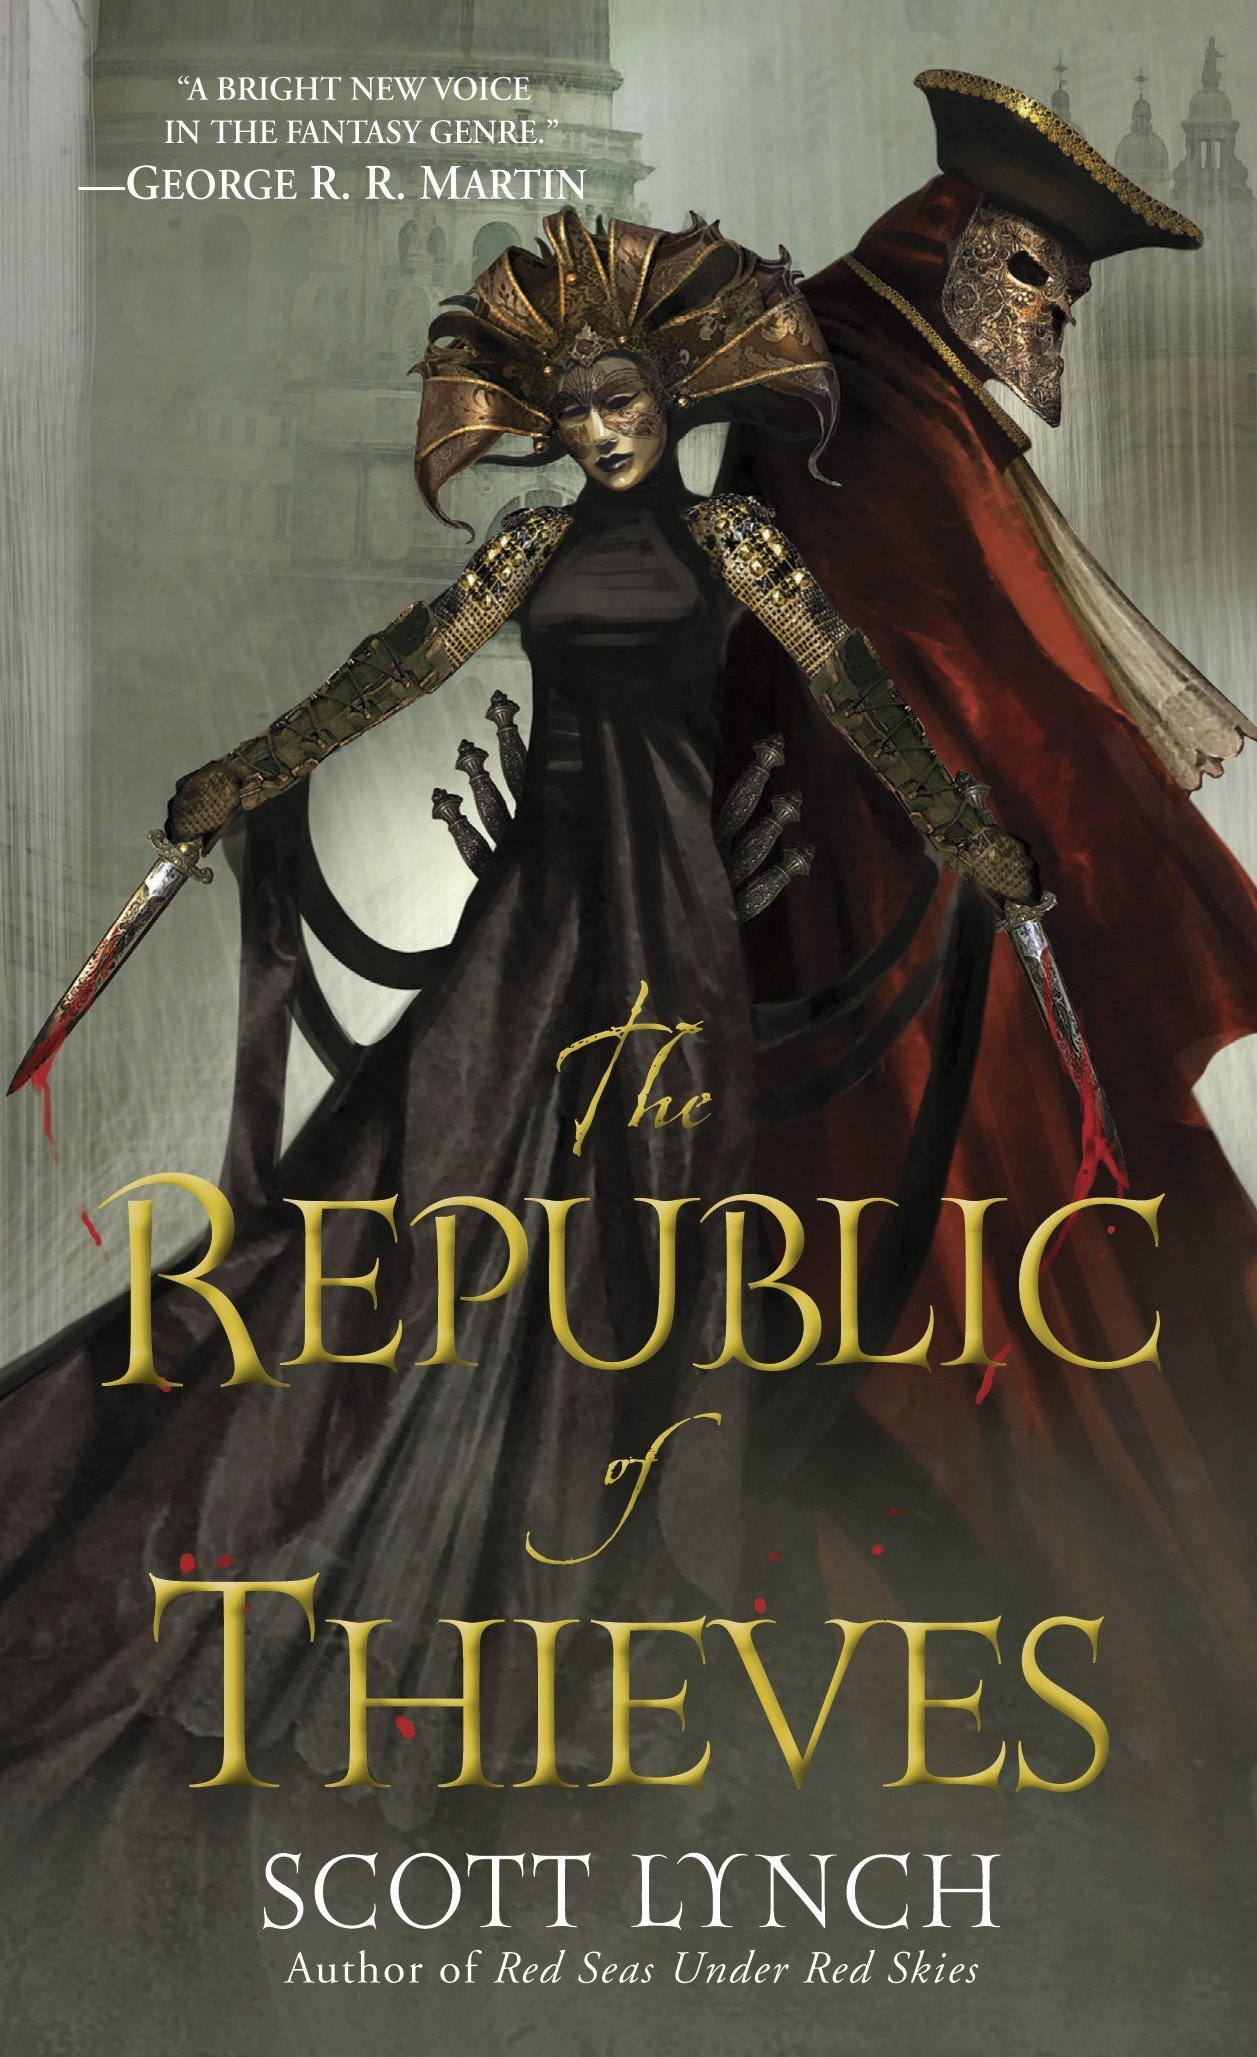 Image result for the republic of thieves